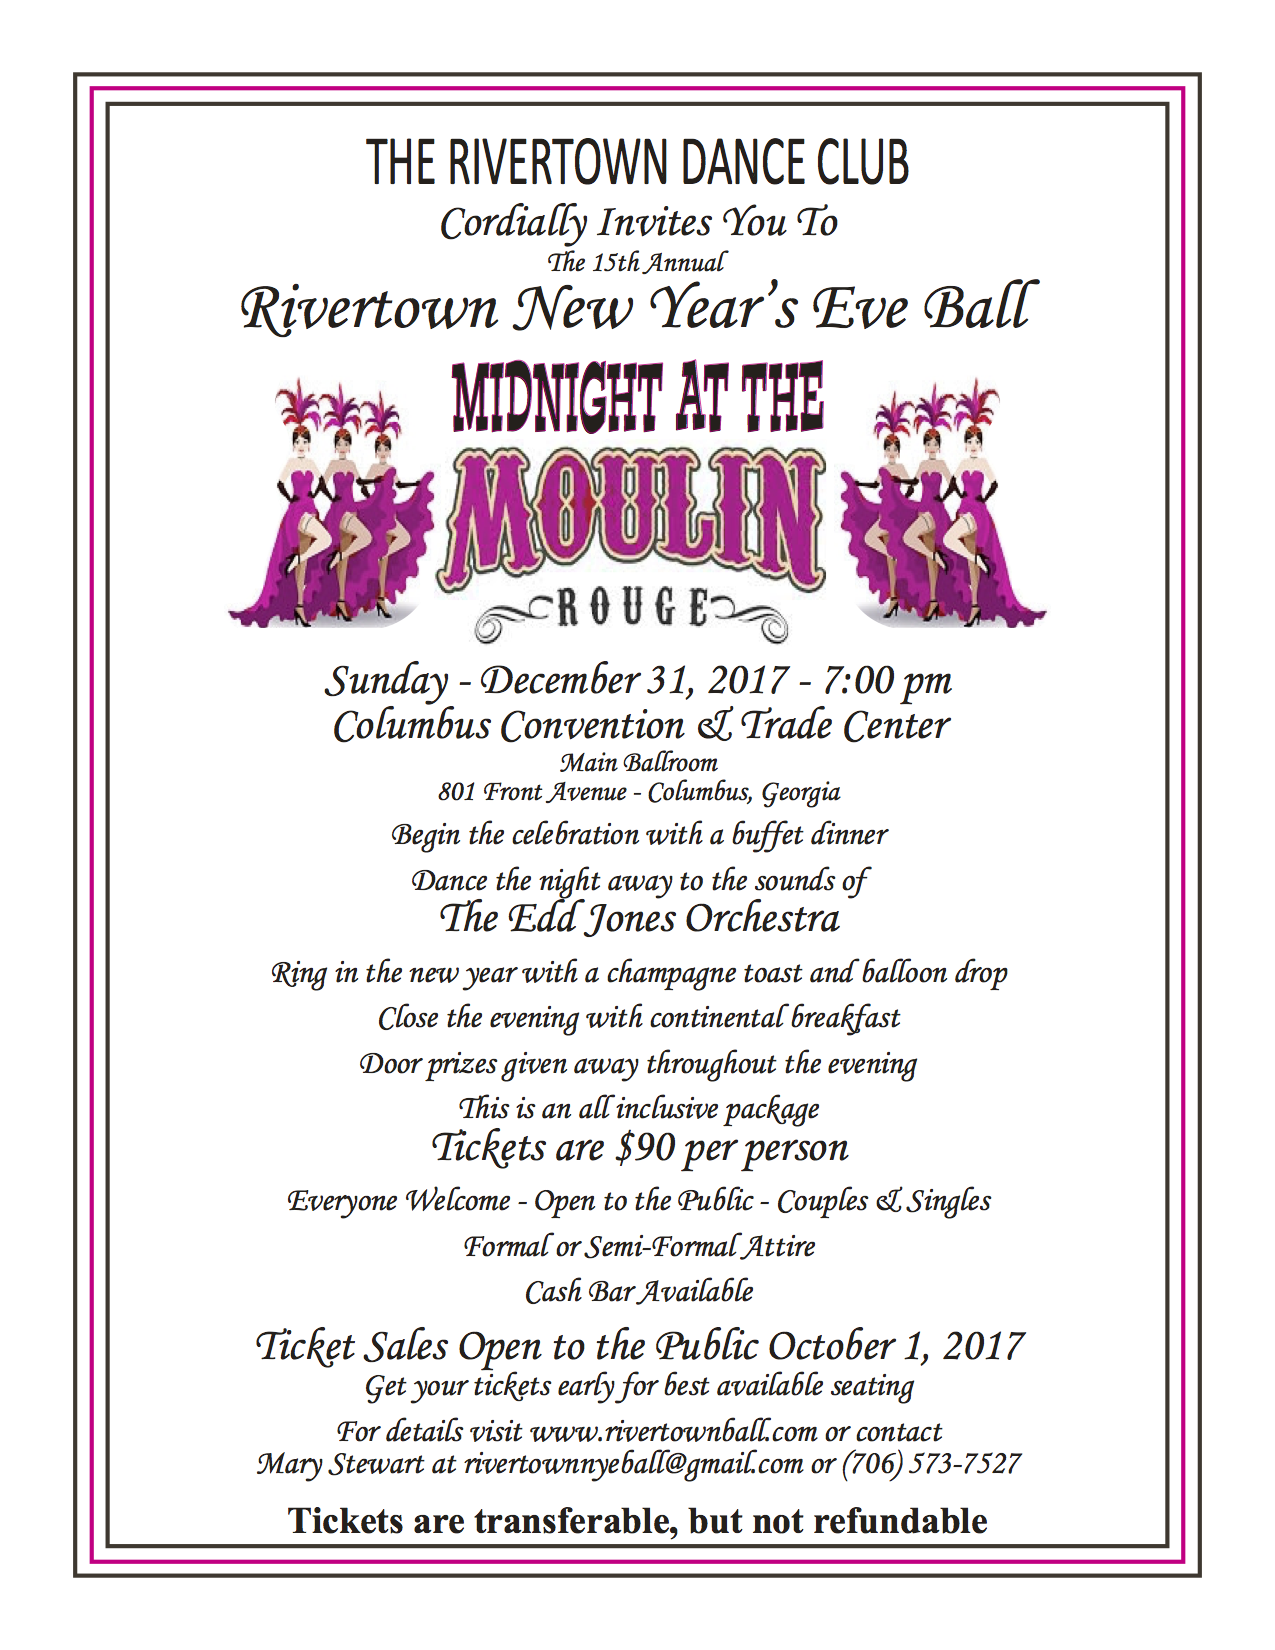 Rivertown New Year's Eve Ball